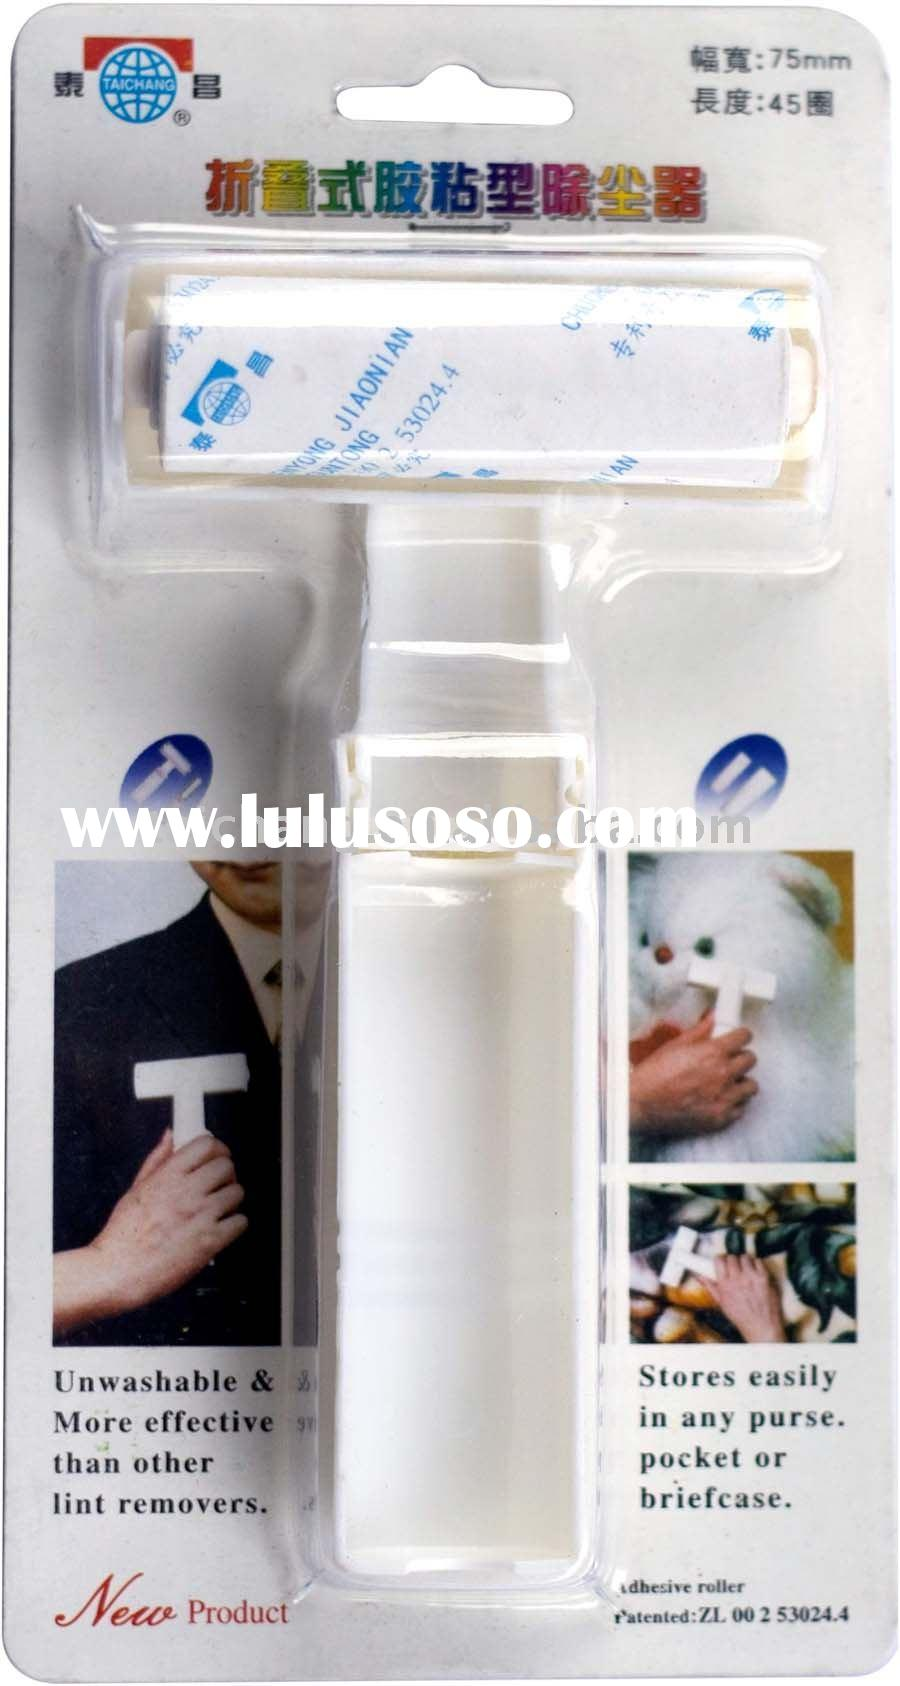 self adhesive lint remover